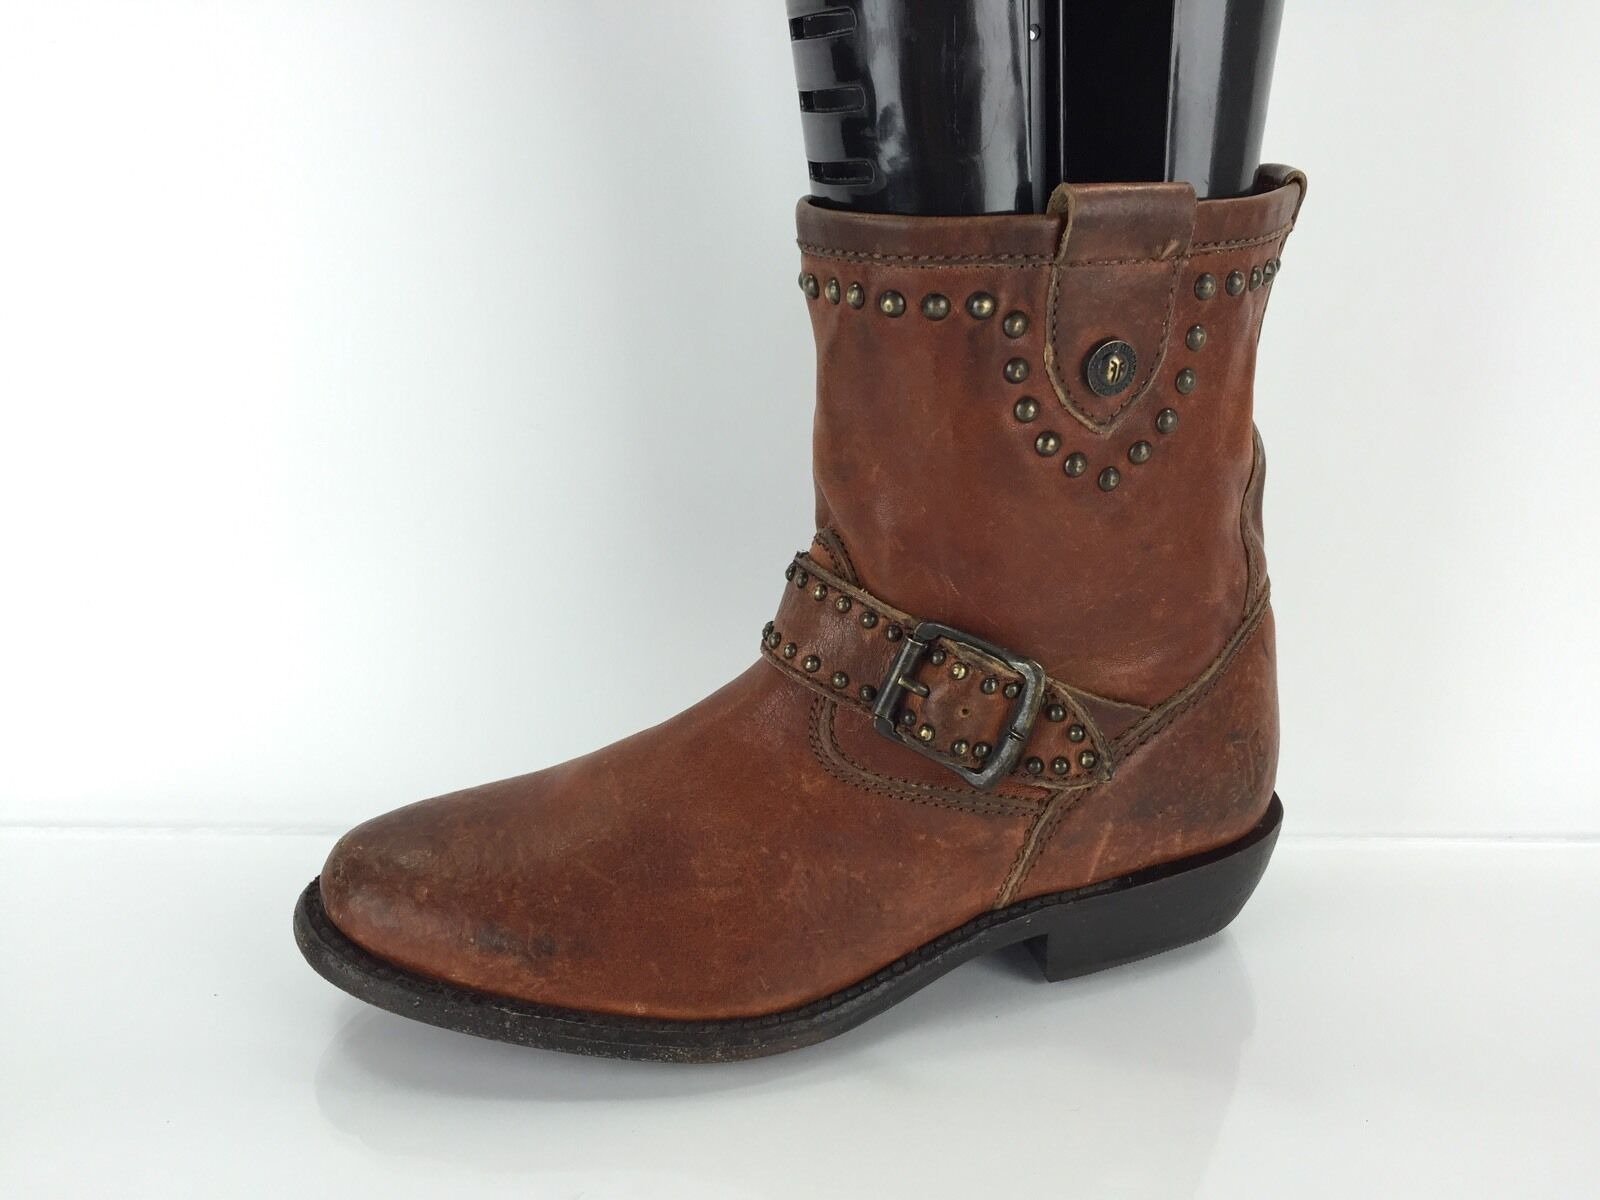 Frye Women's Brown Leather Boots 5.5 B